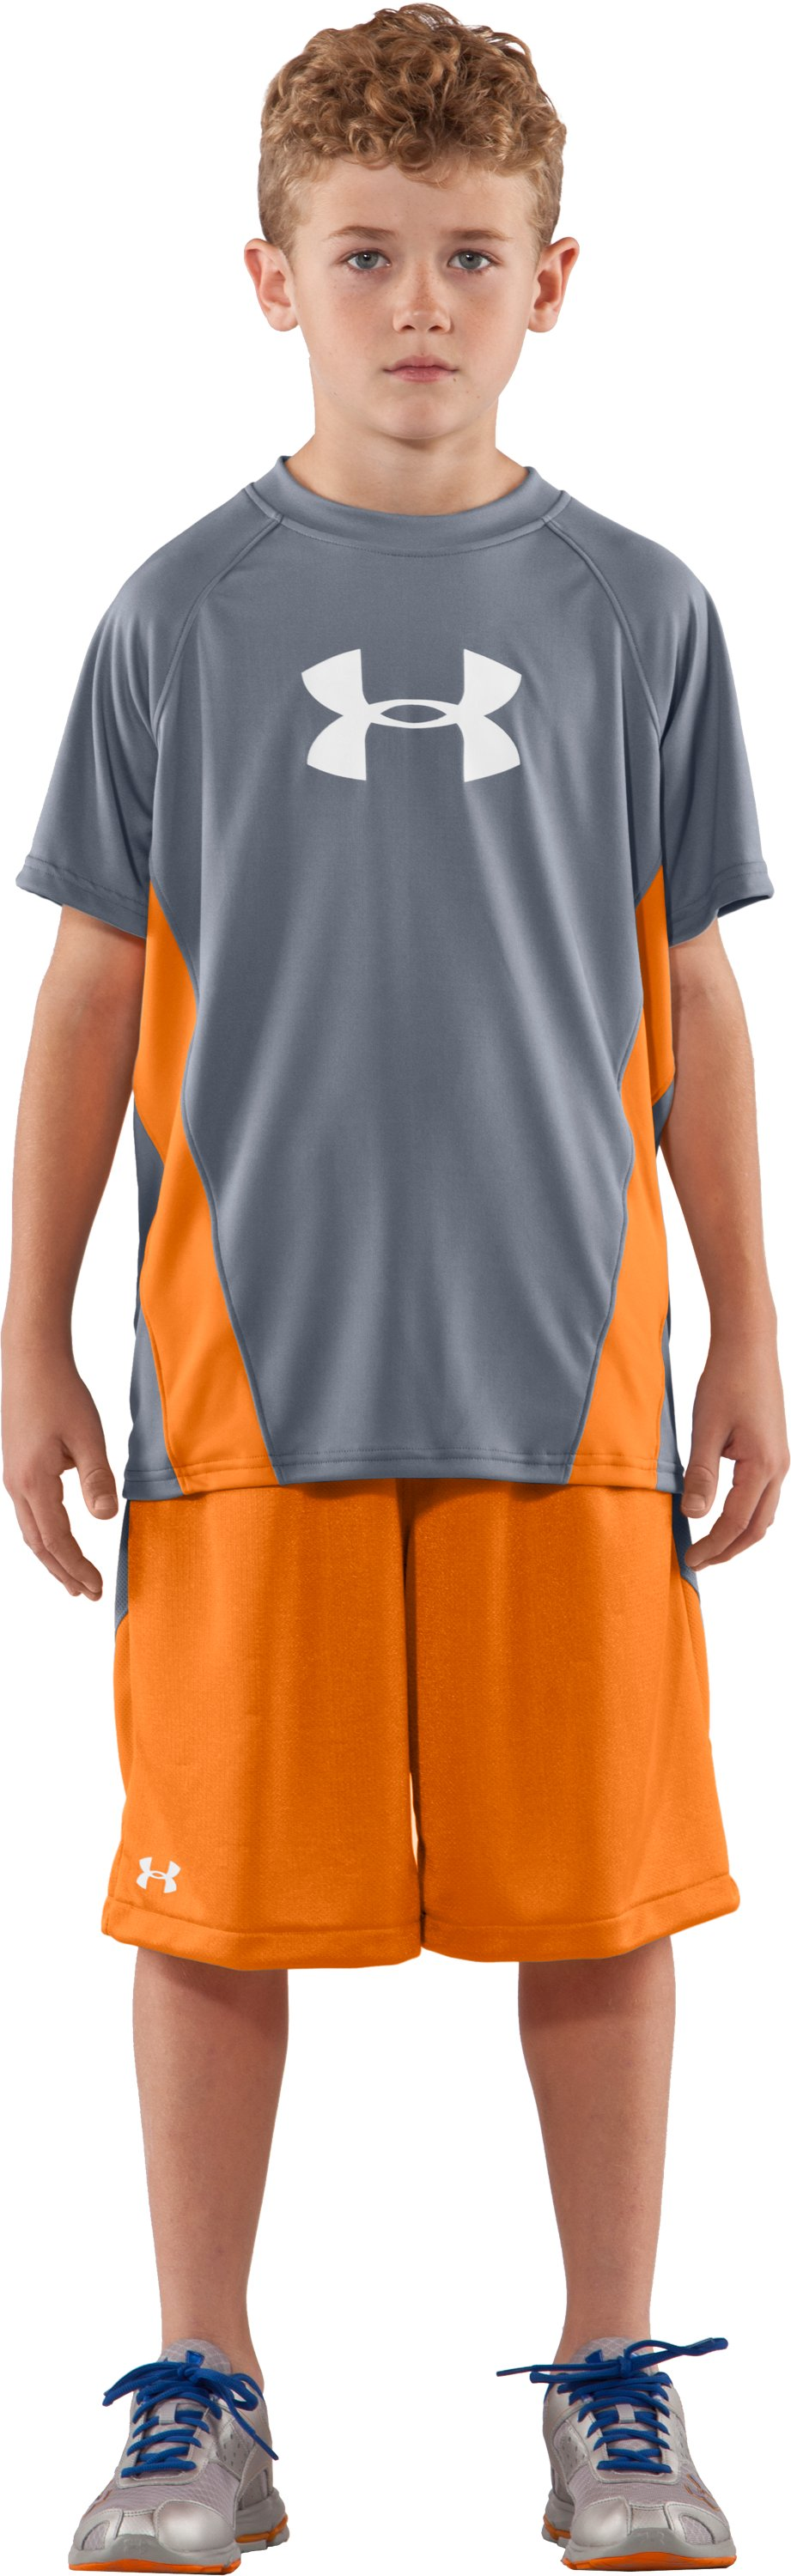 Boys' UA Show Me Sweat Short Sleeve T-Shirt, Steel, Front